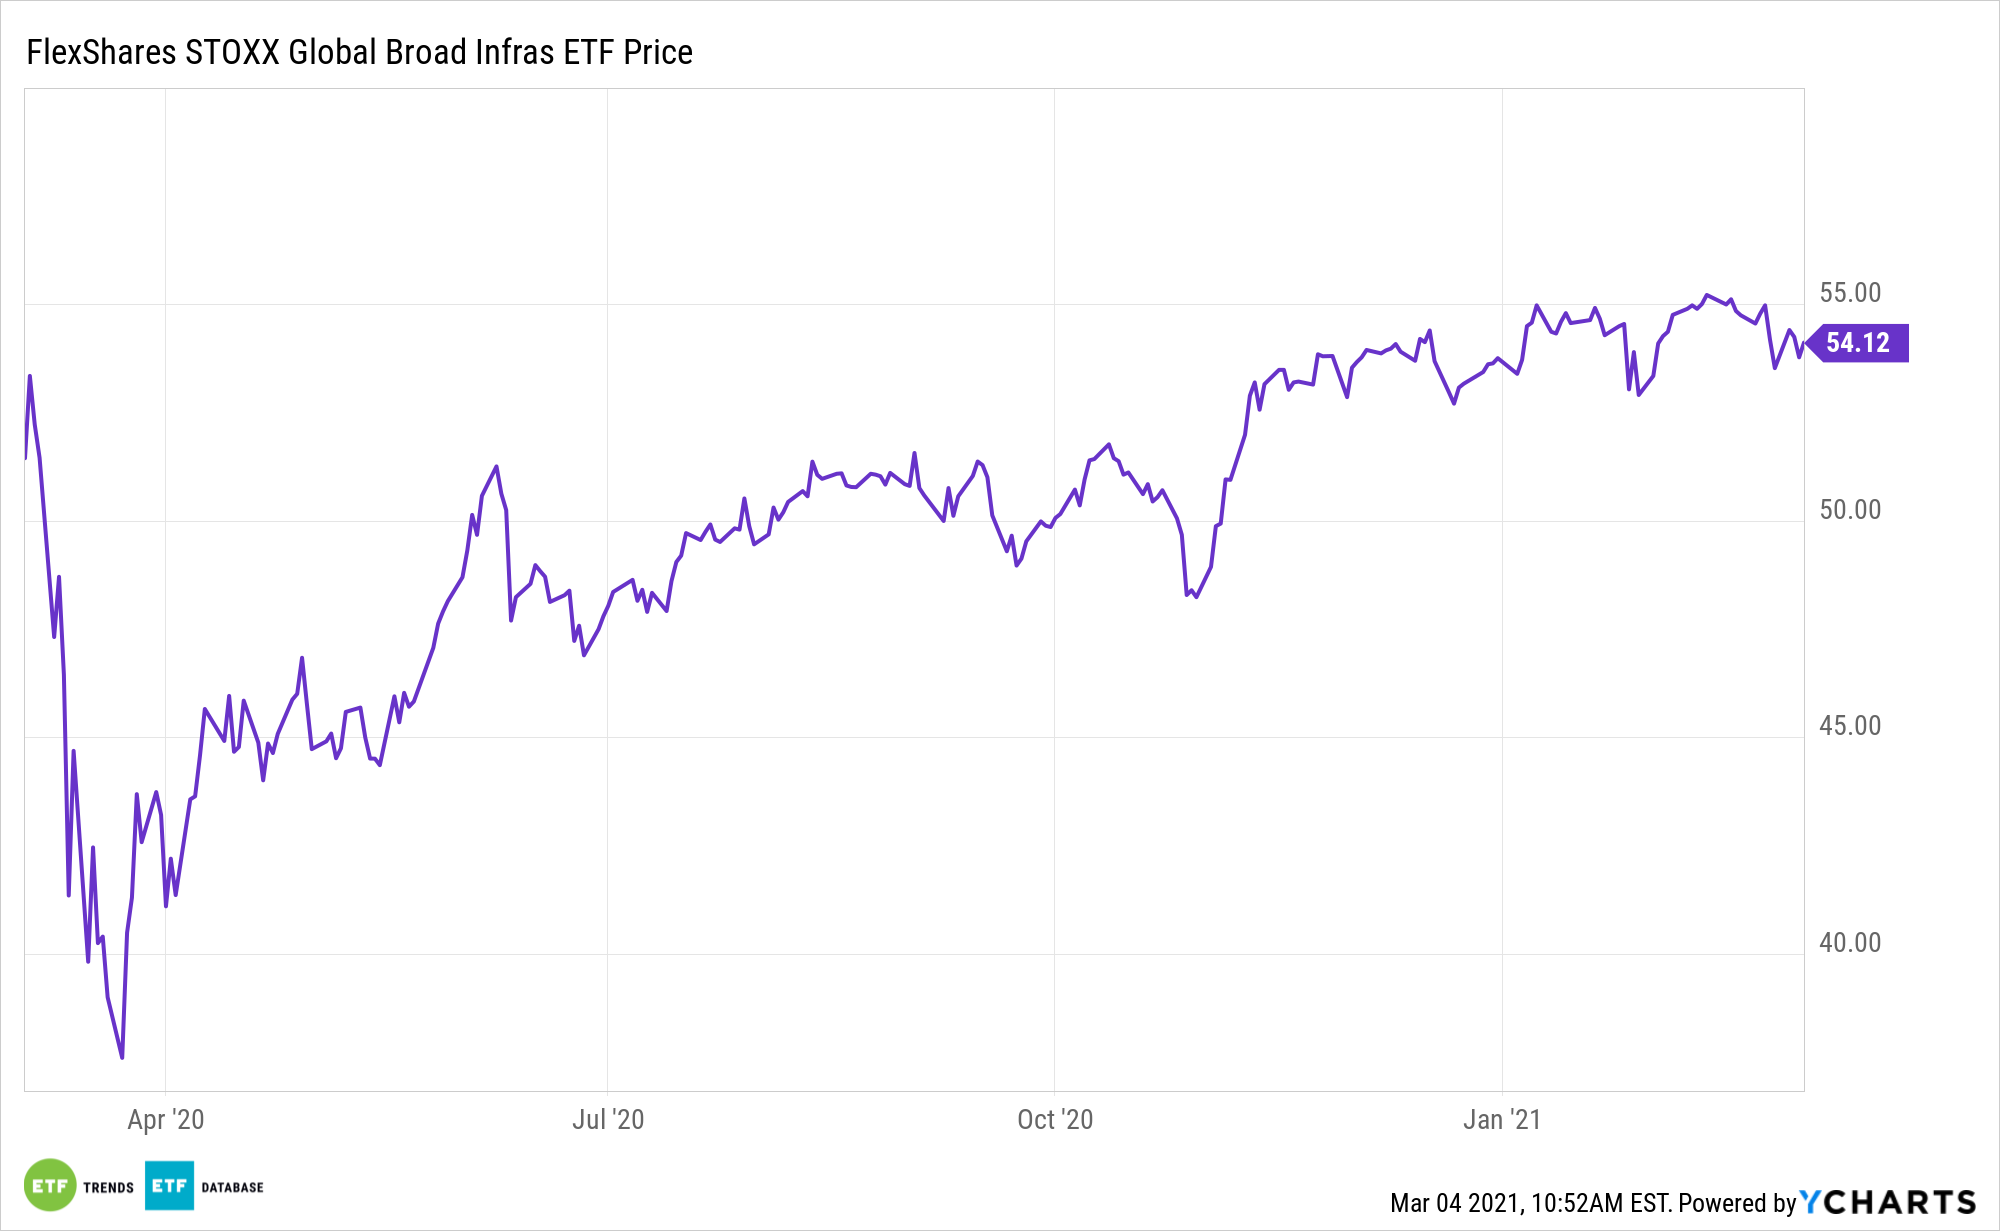 NFRA 1 Year Performance